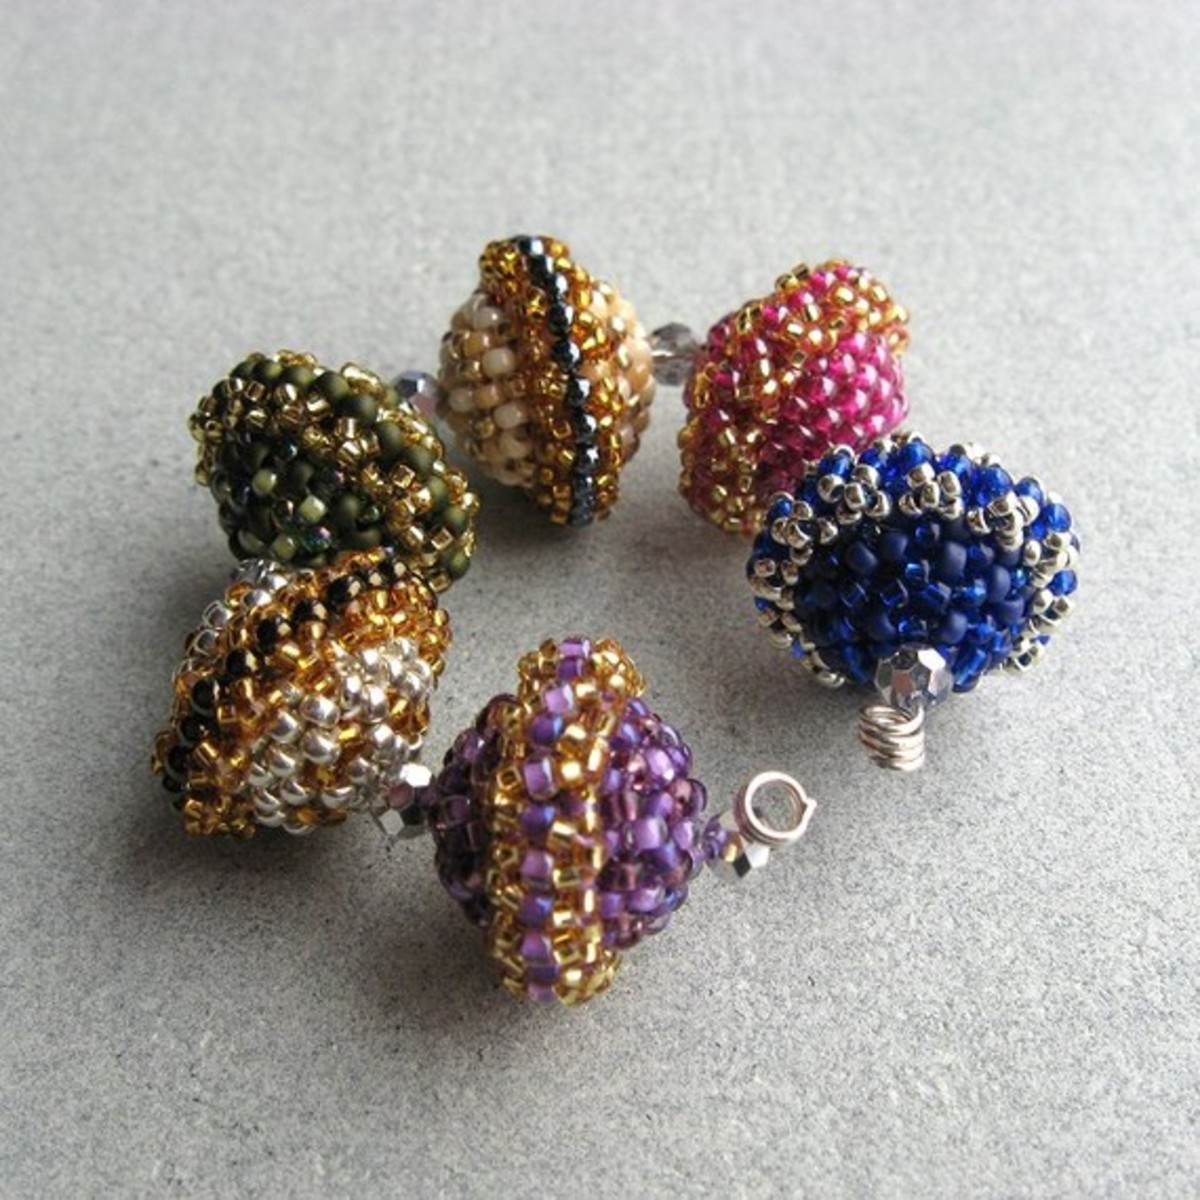 beaded-beads-patterns-and-stunning-jewelry-inspiration